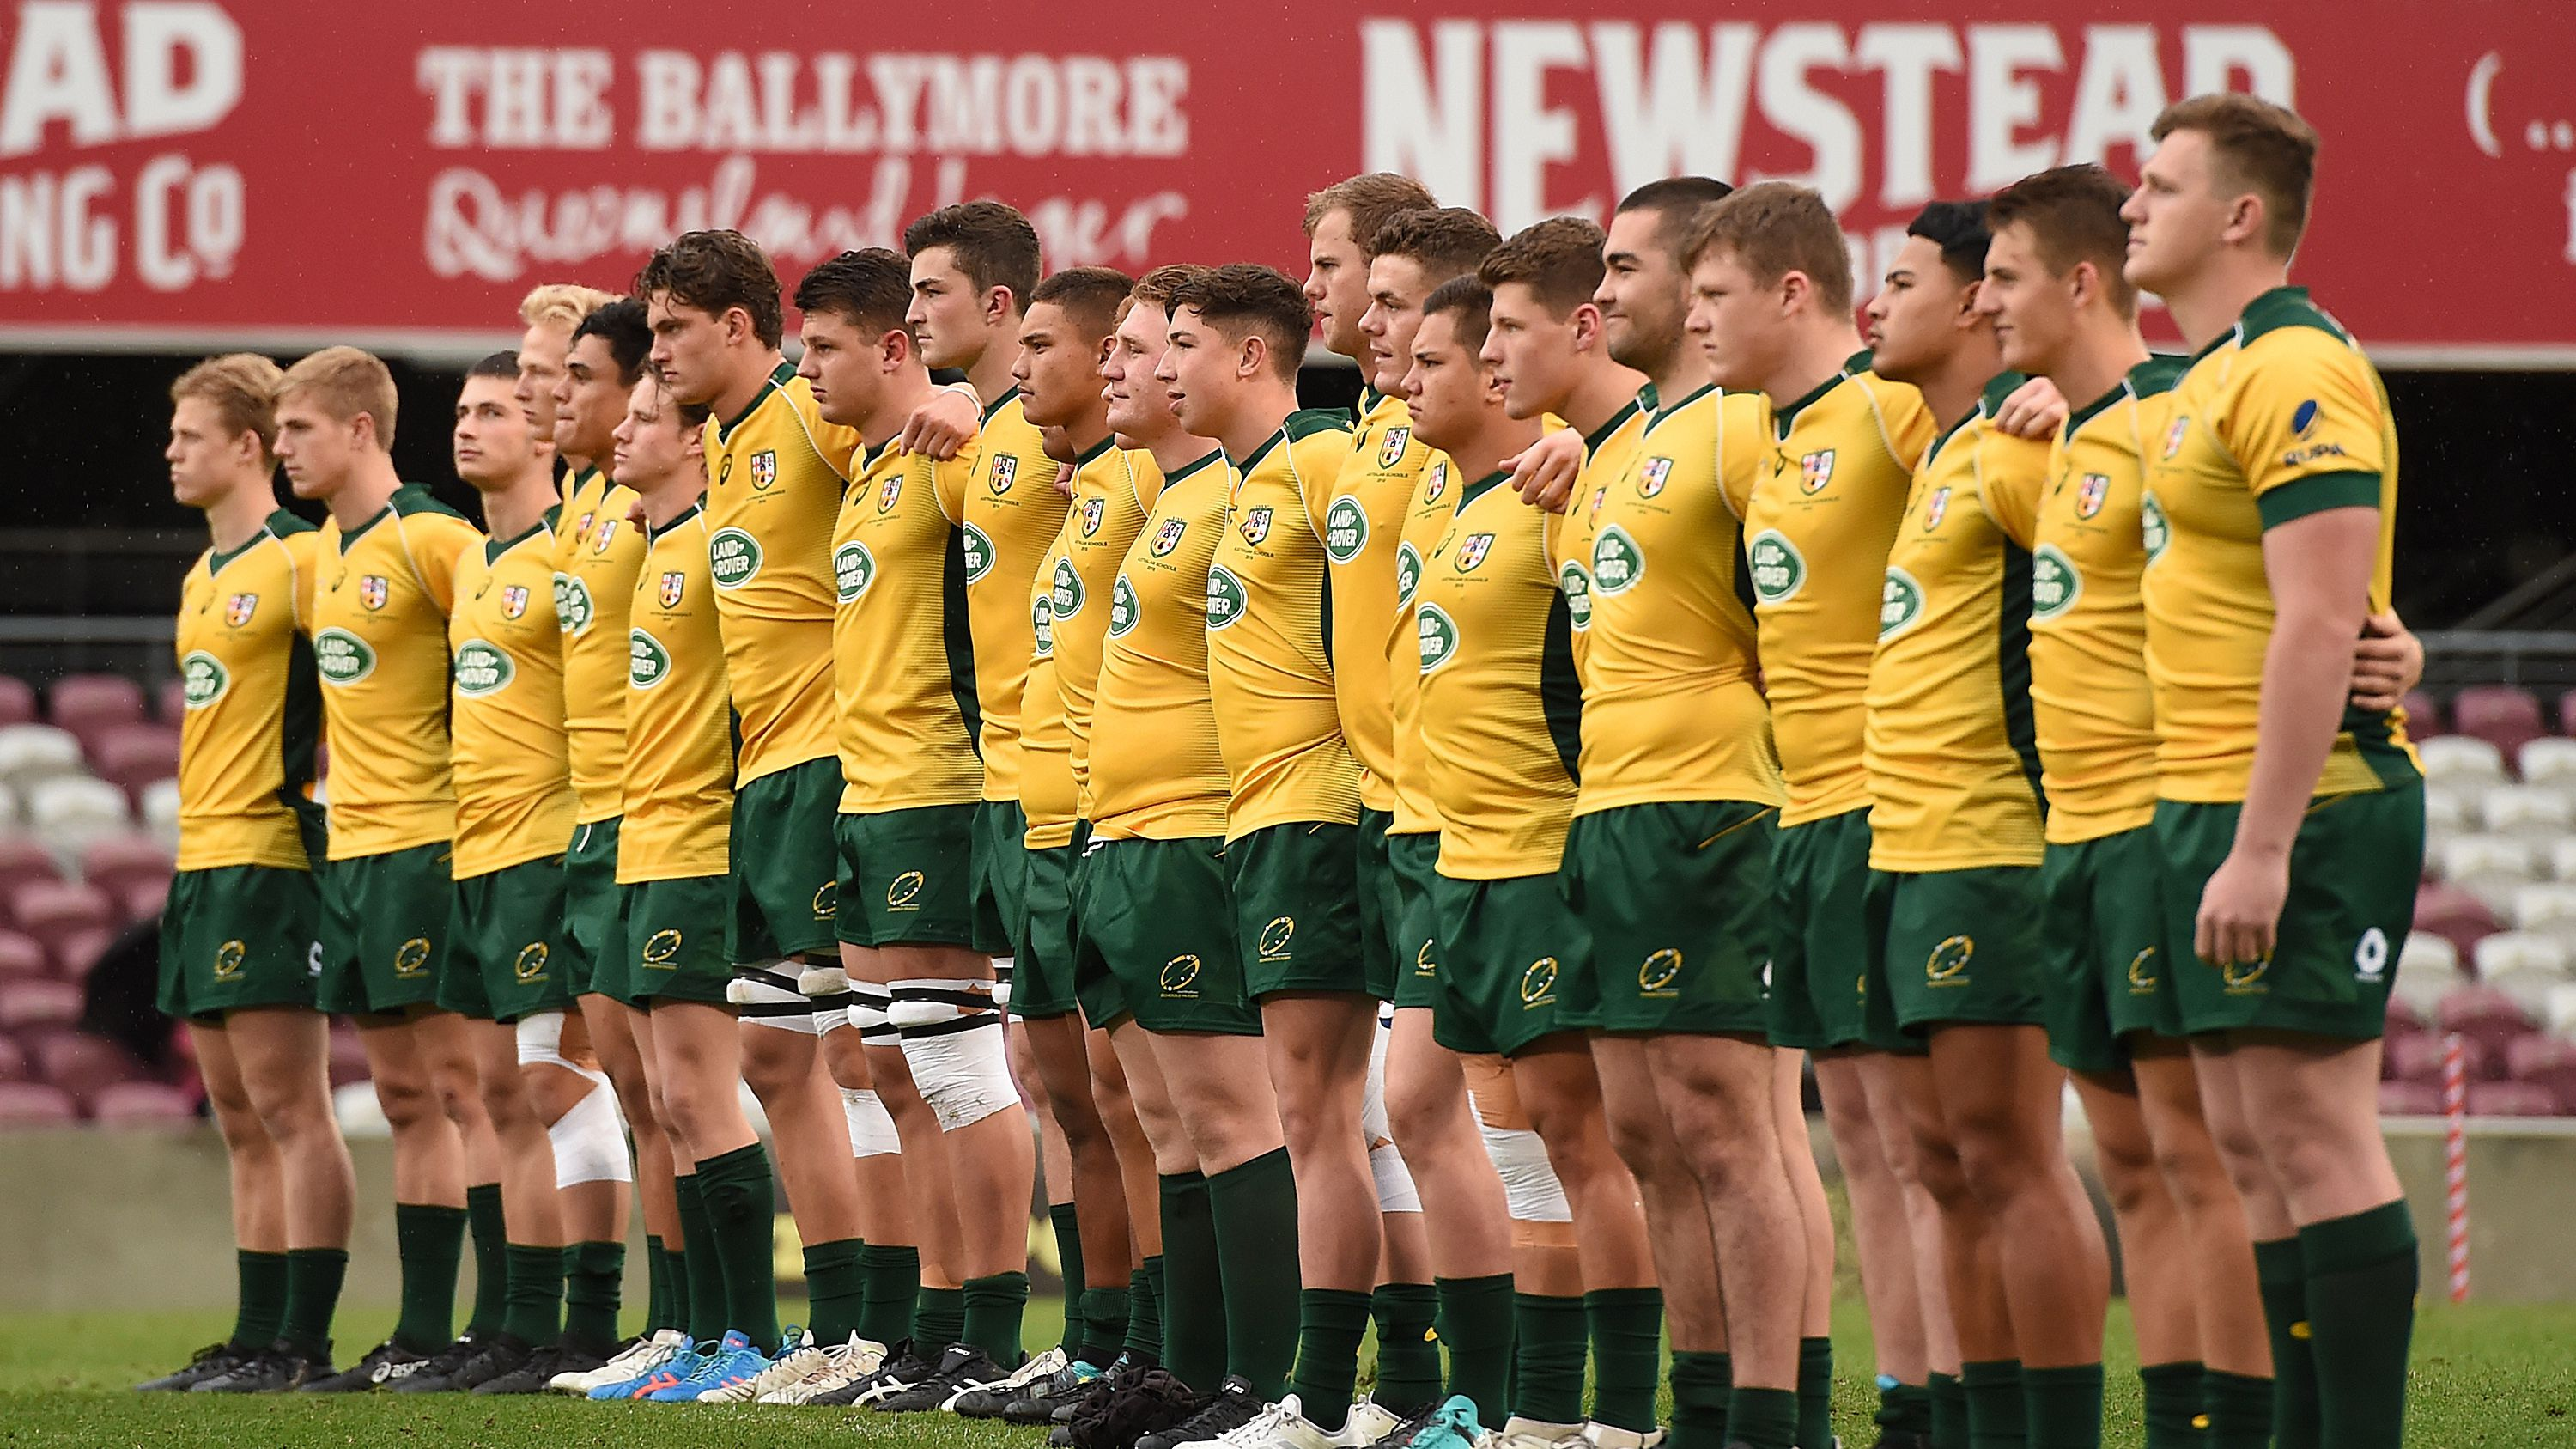 Australian Schools players line up ready to play at Ballymore.